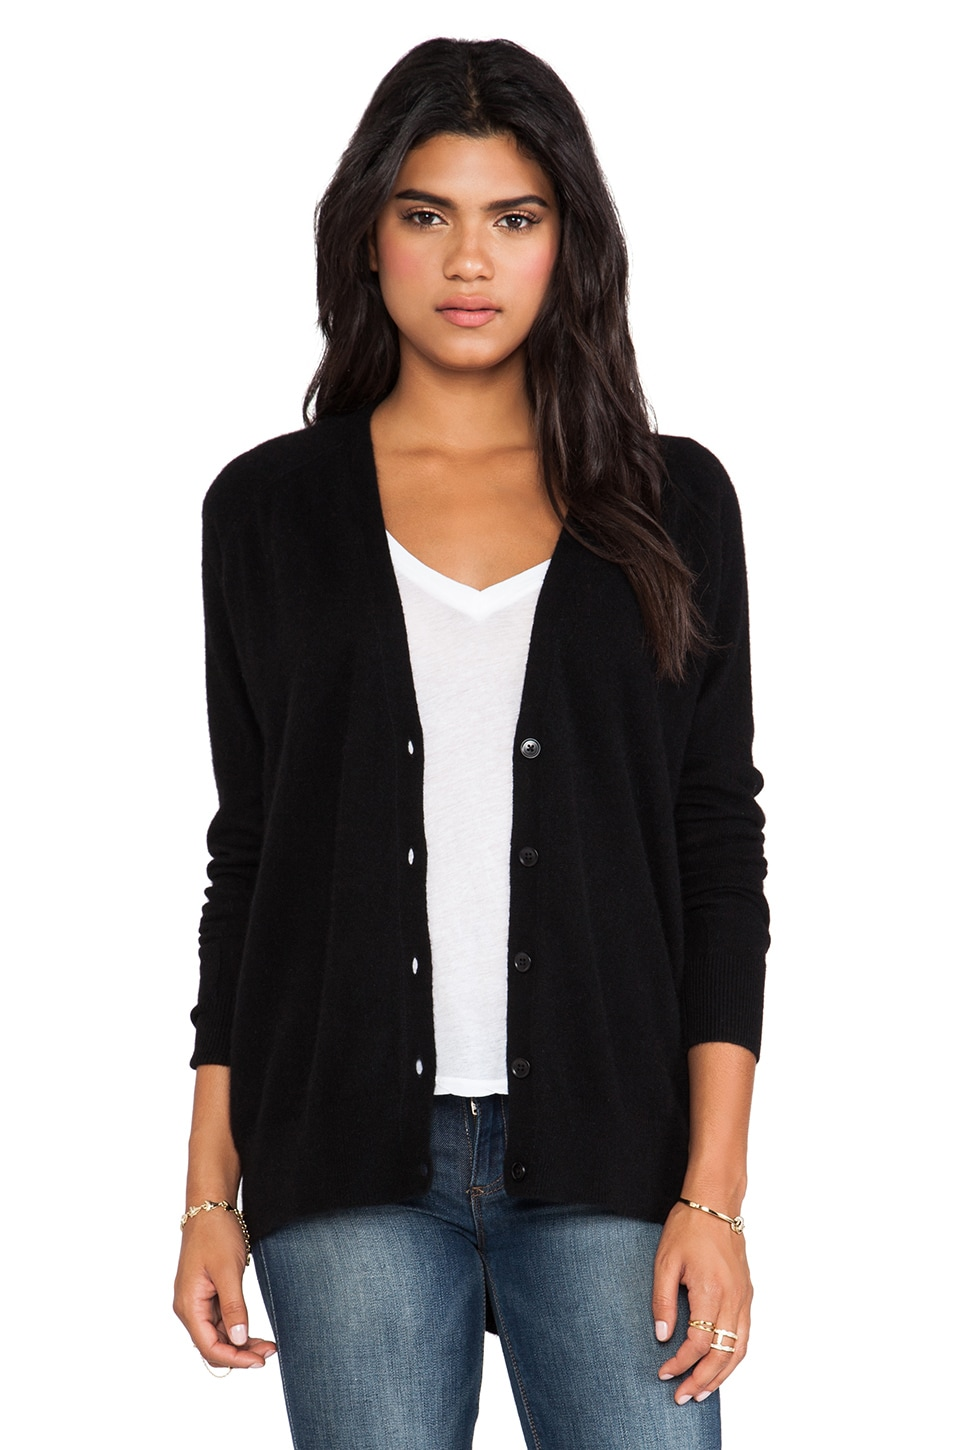 360 Sweater Milan Cardigan in Black